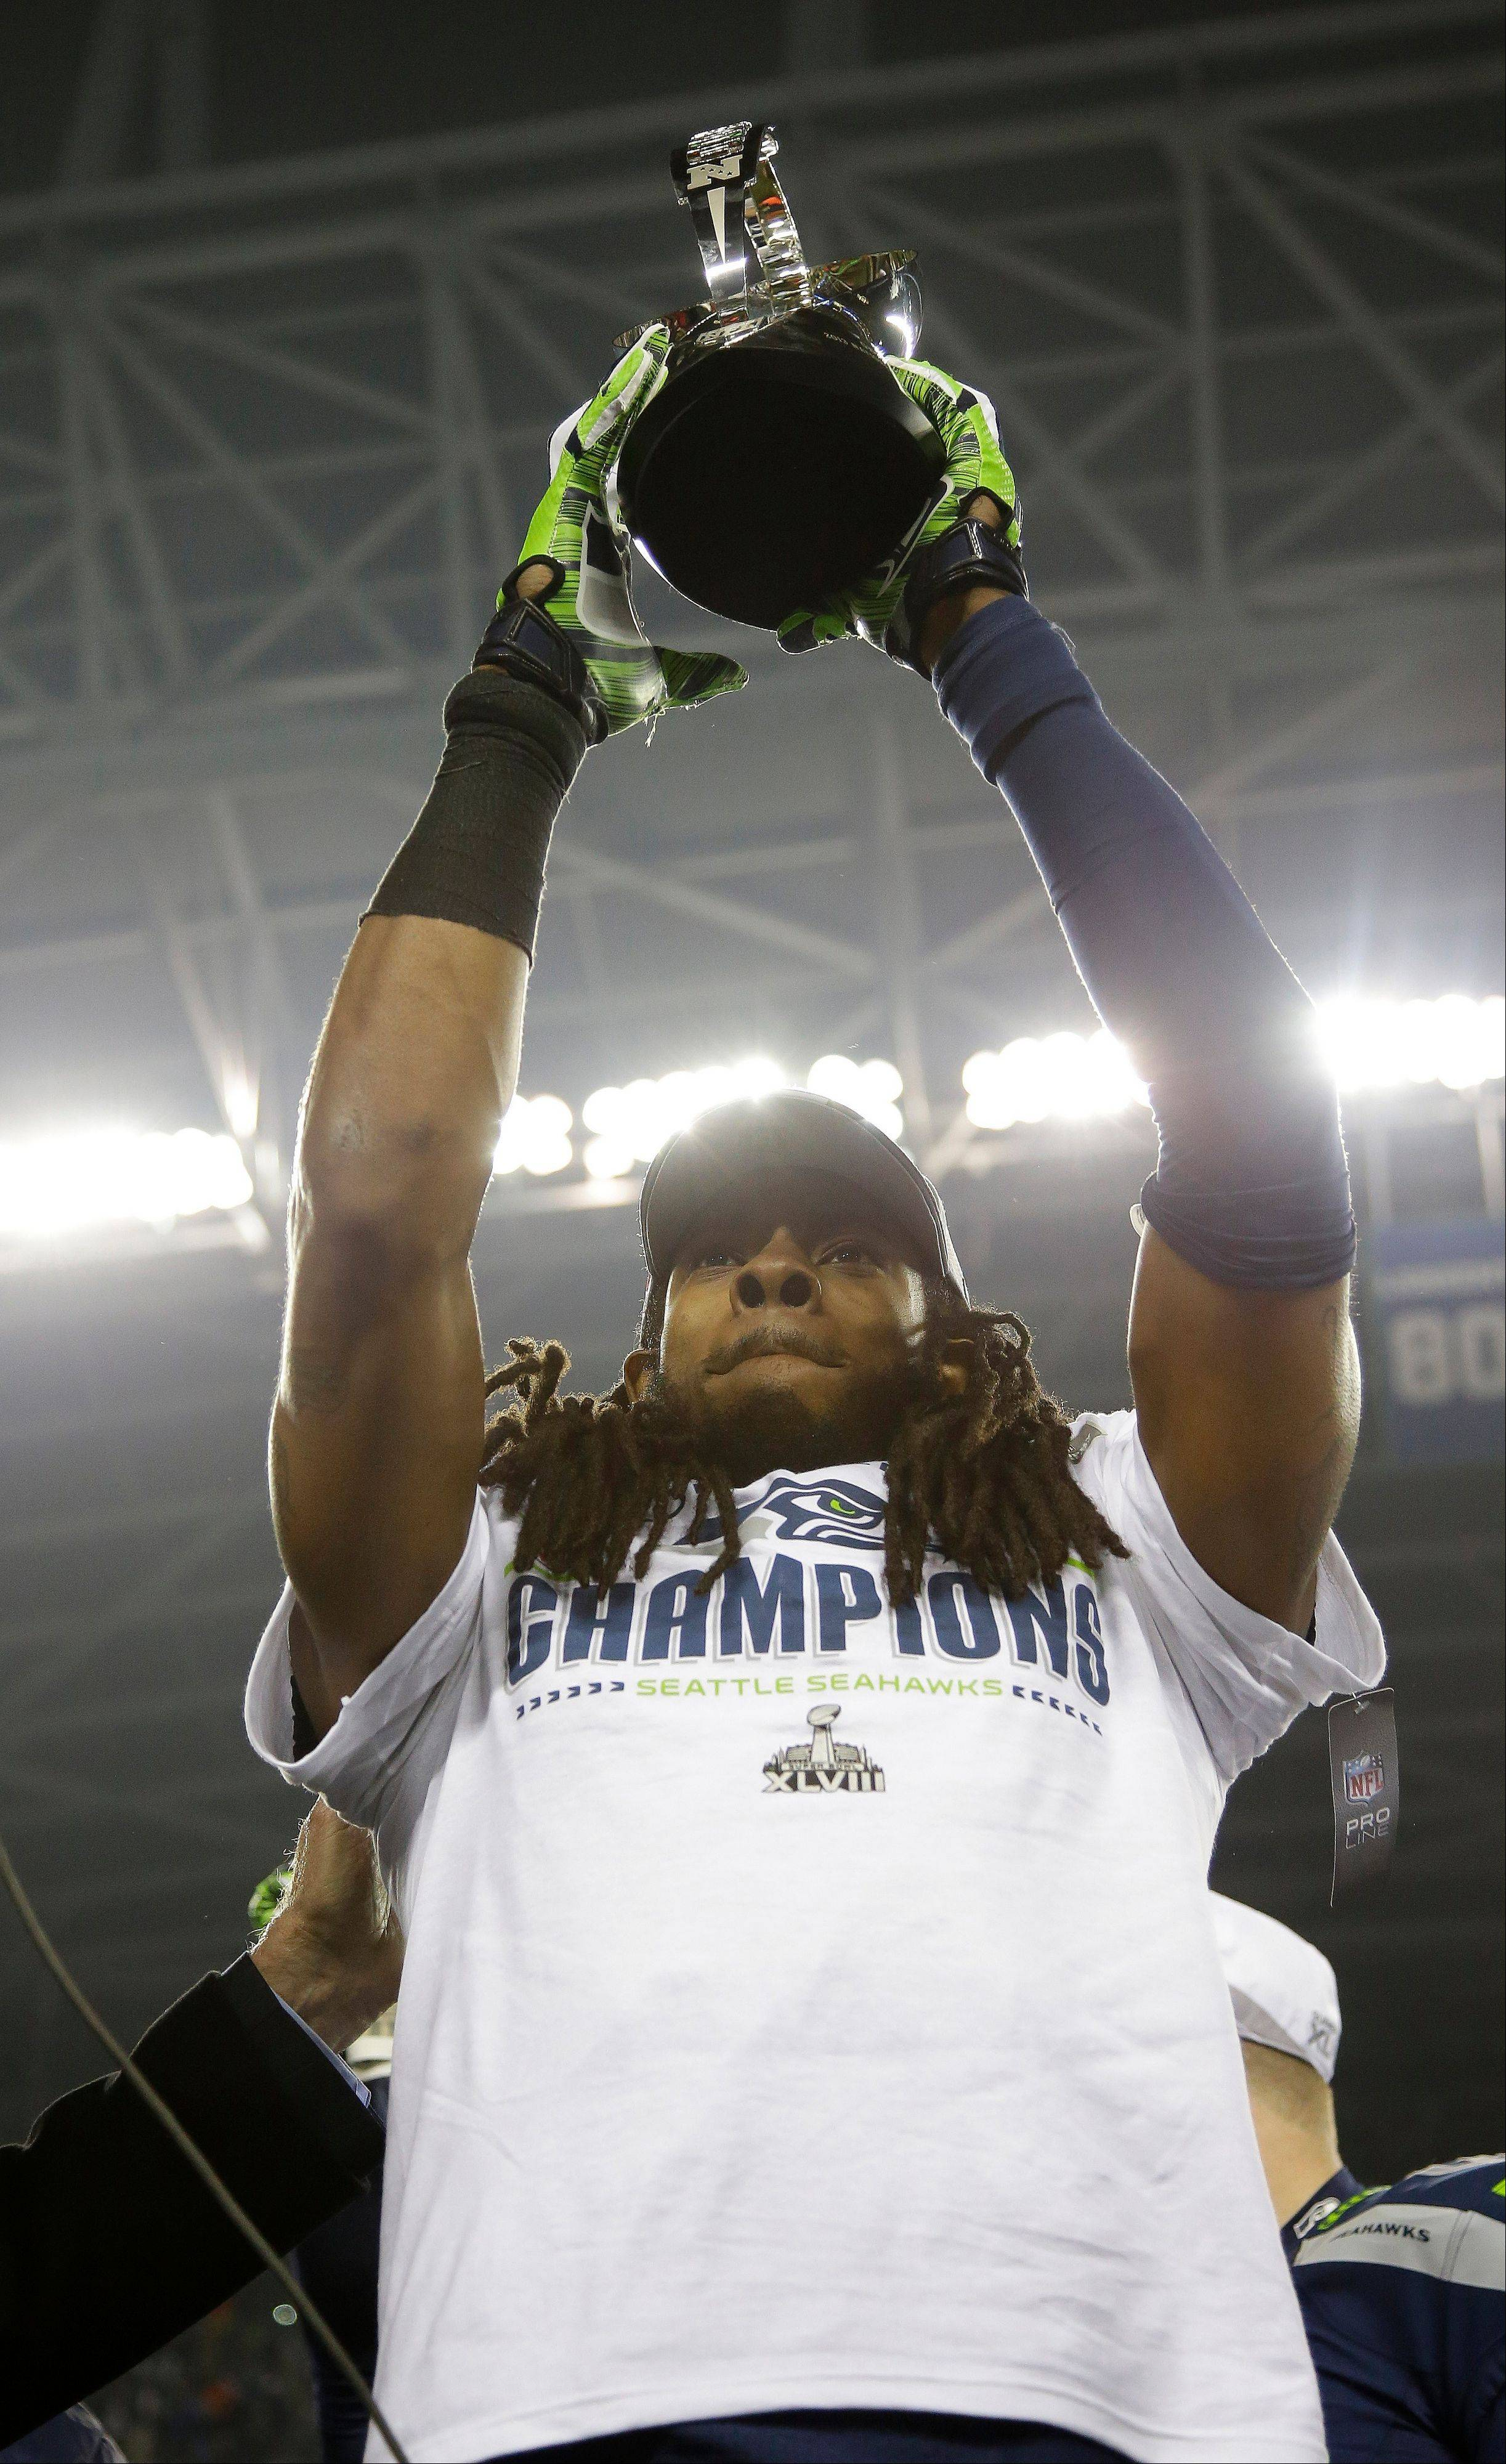 Seattle's Richard Sherman holds up the George Halas Trophy after the NFC Championship Game against the San Francisco 49ers on Sunday. The Seahawks won 23-17 to advance to Super Bowl XLVIII.